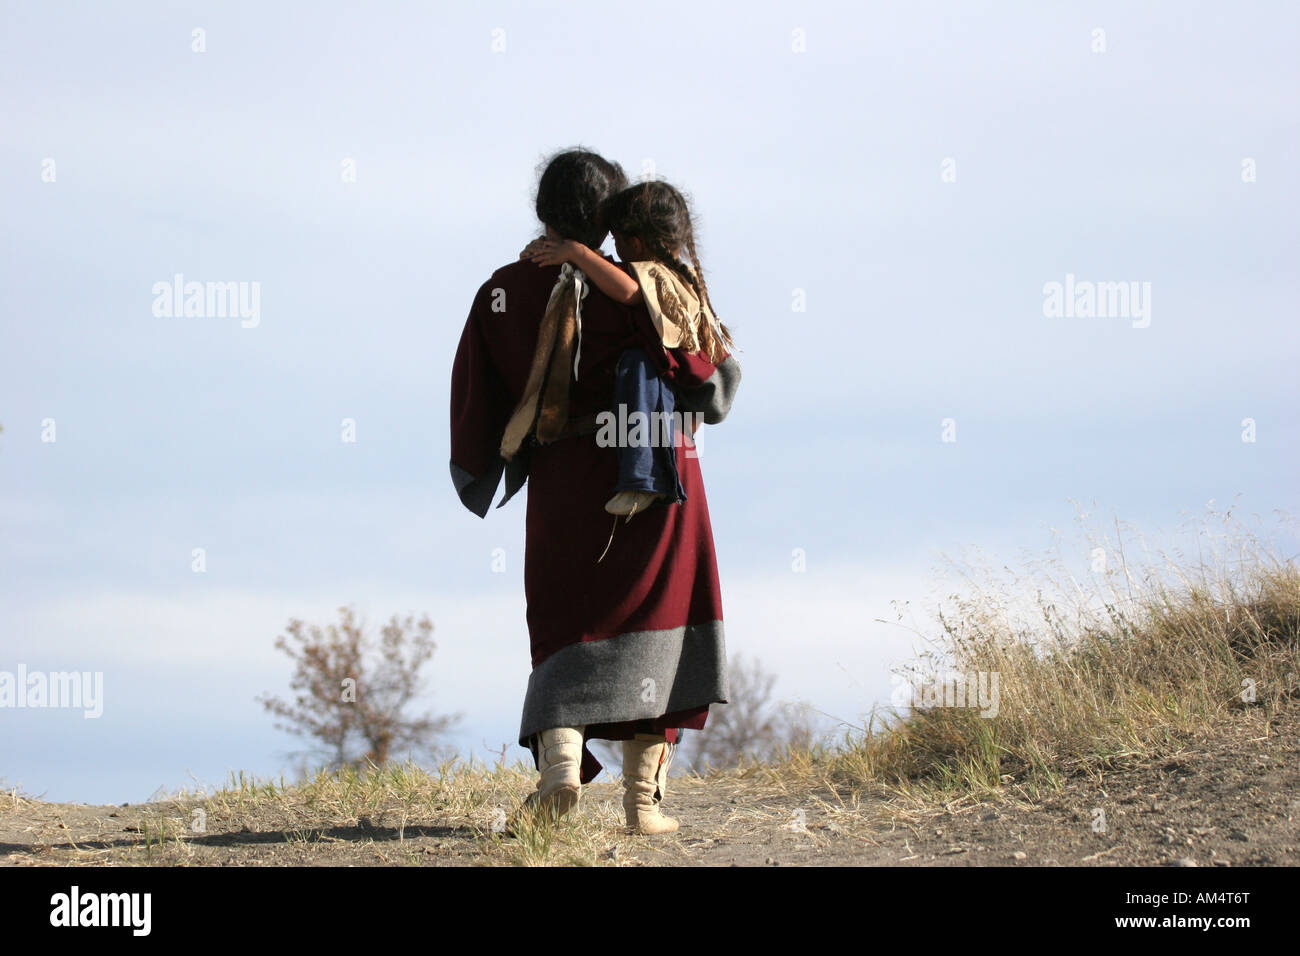 A young Native American Indian mom carrying her child - Stock Image